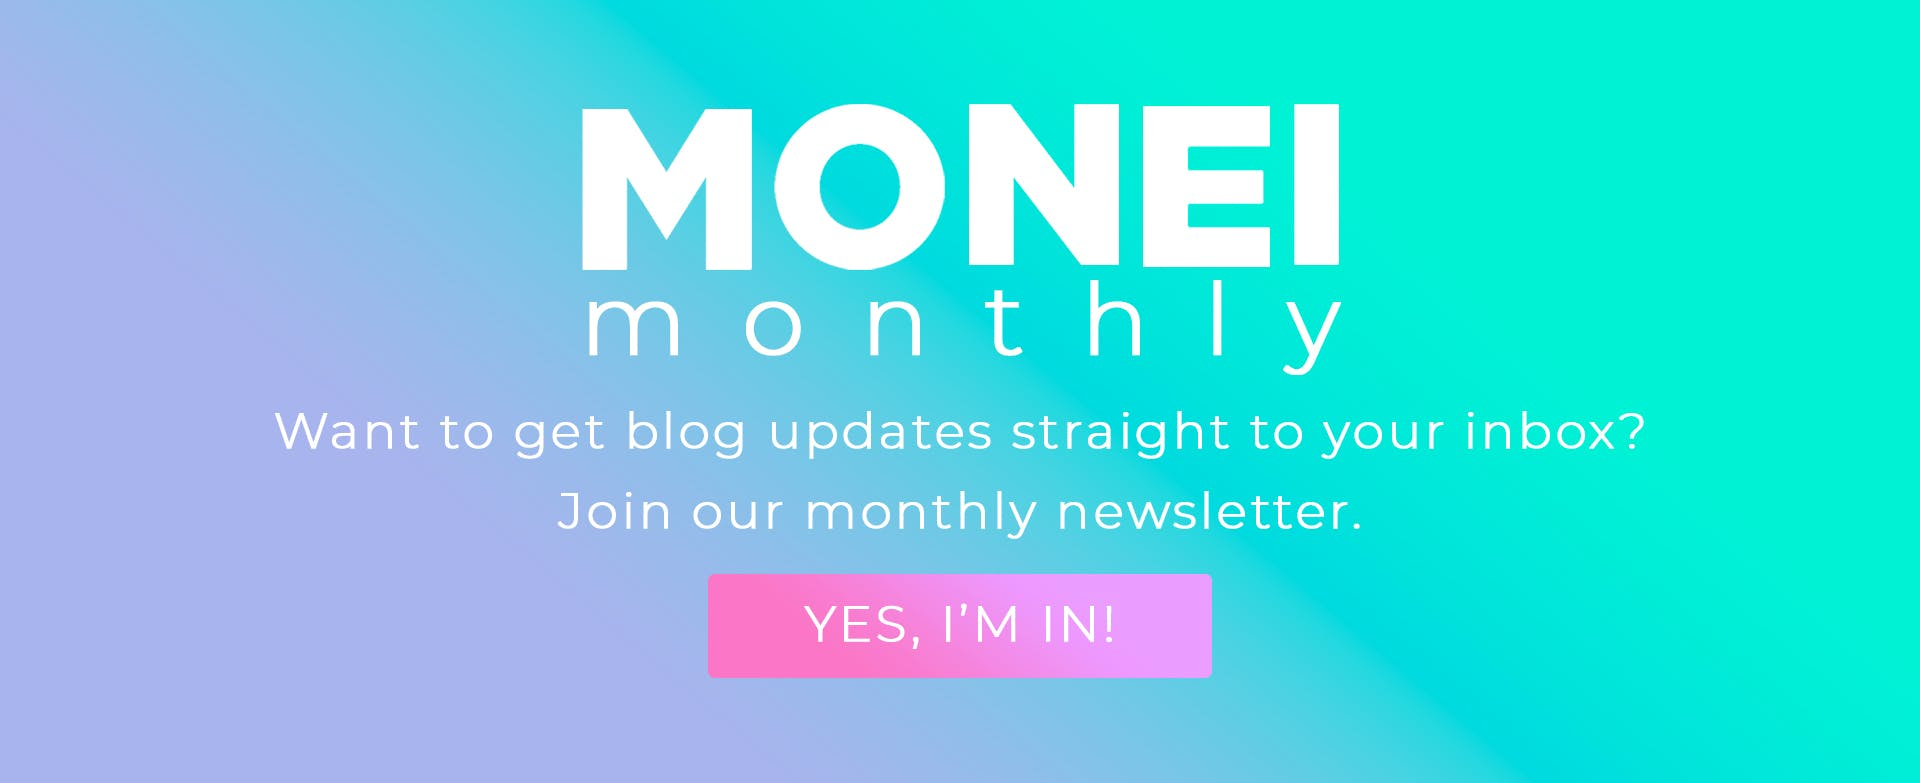 MONEI newsletter graphic